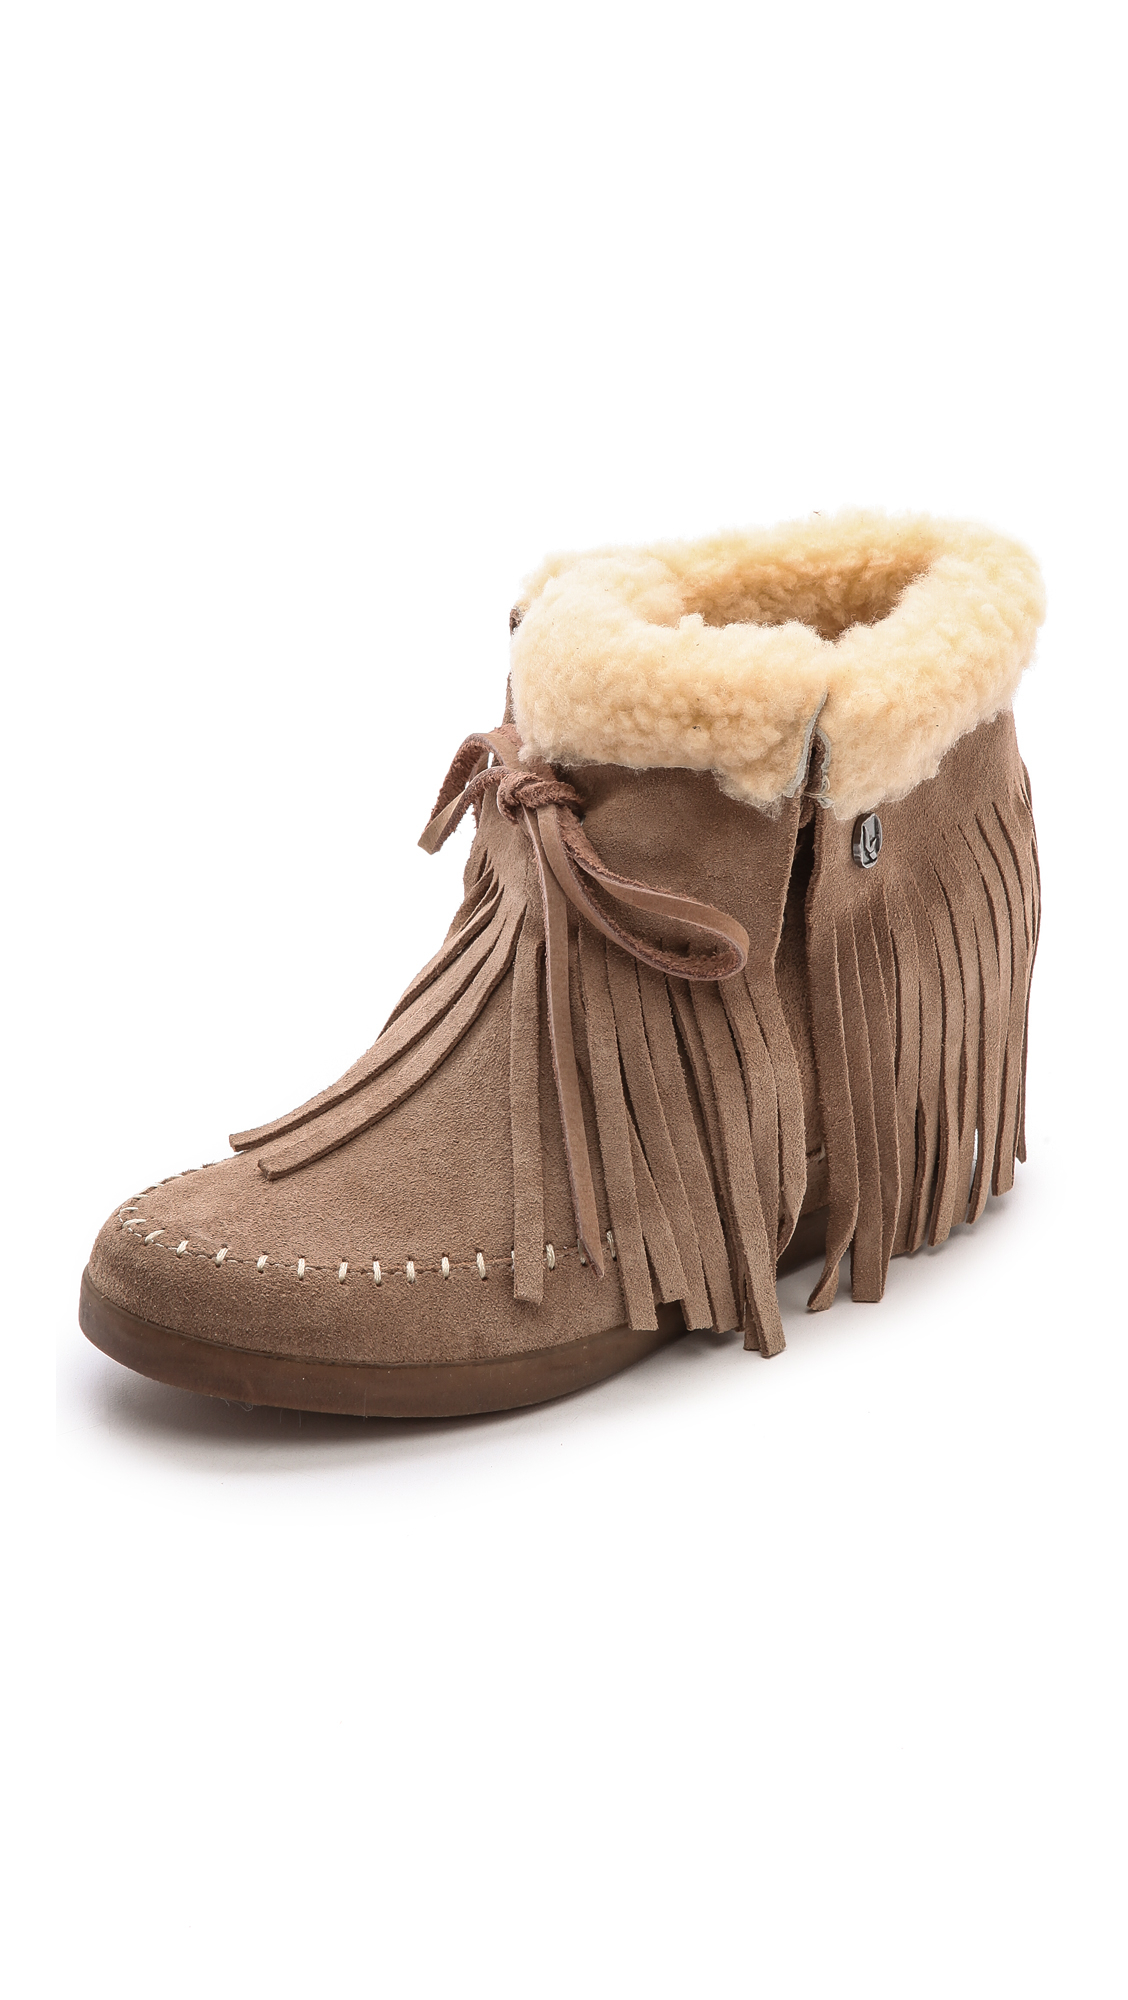 Lyst Koolaburra Fringe Moccasin Wedge Booties Stelle